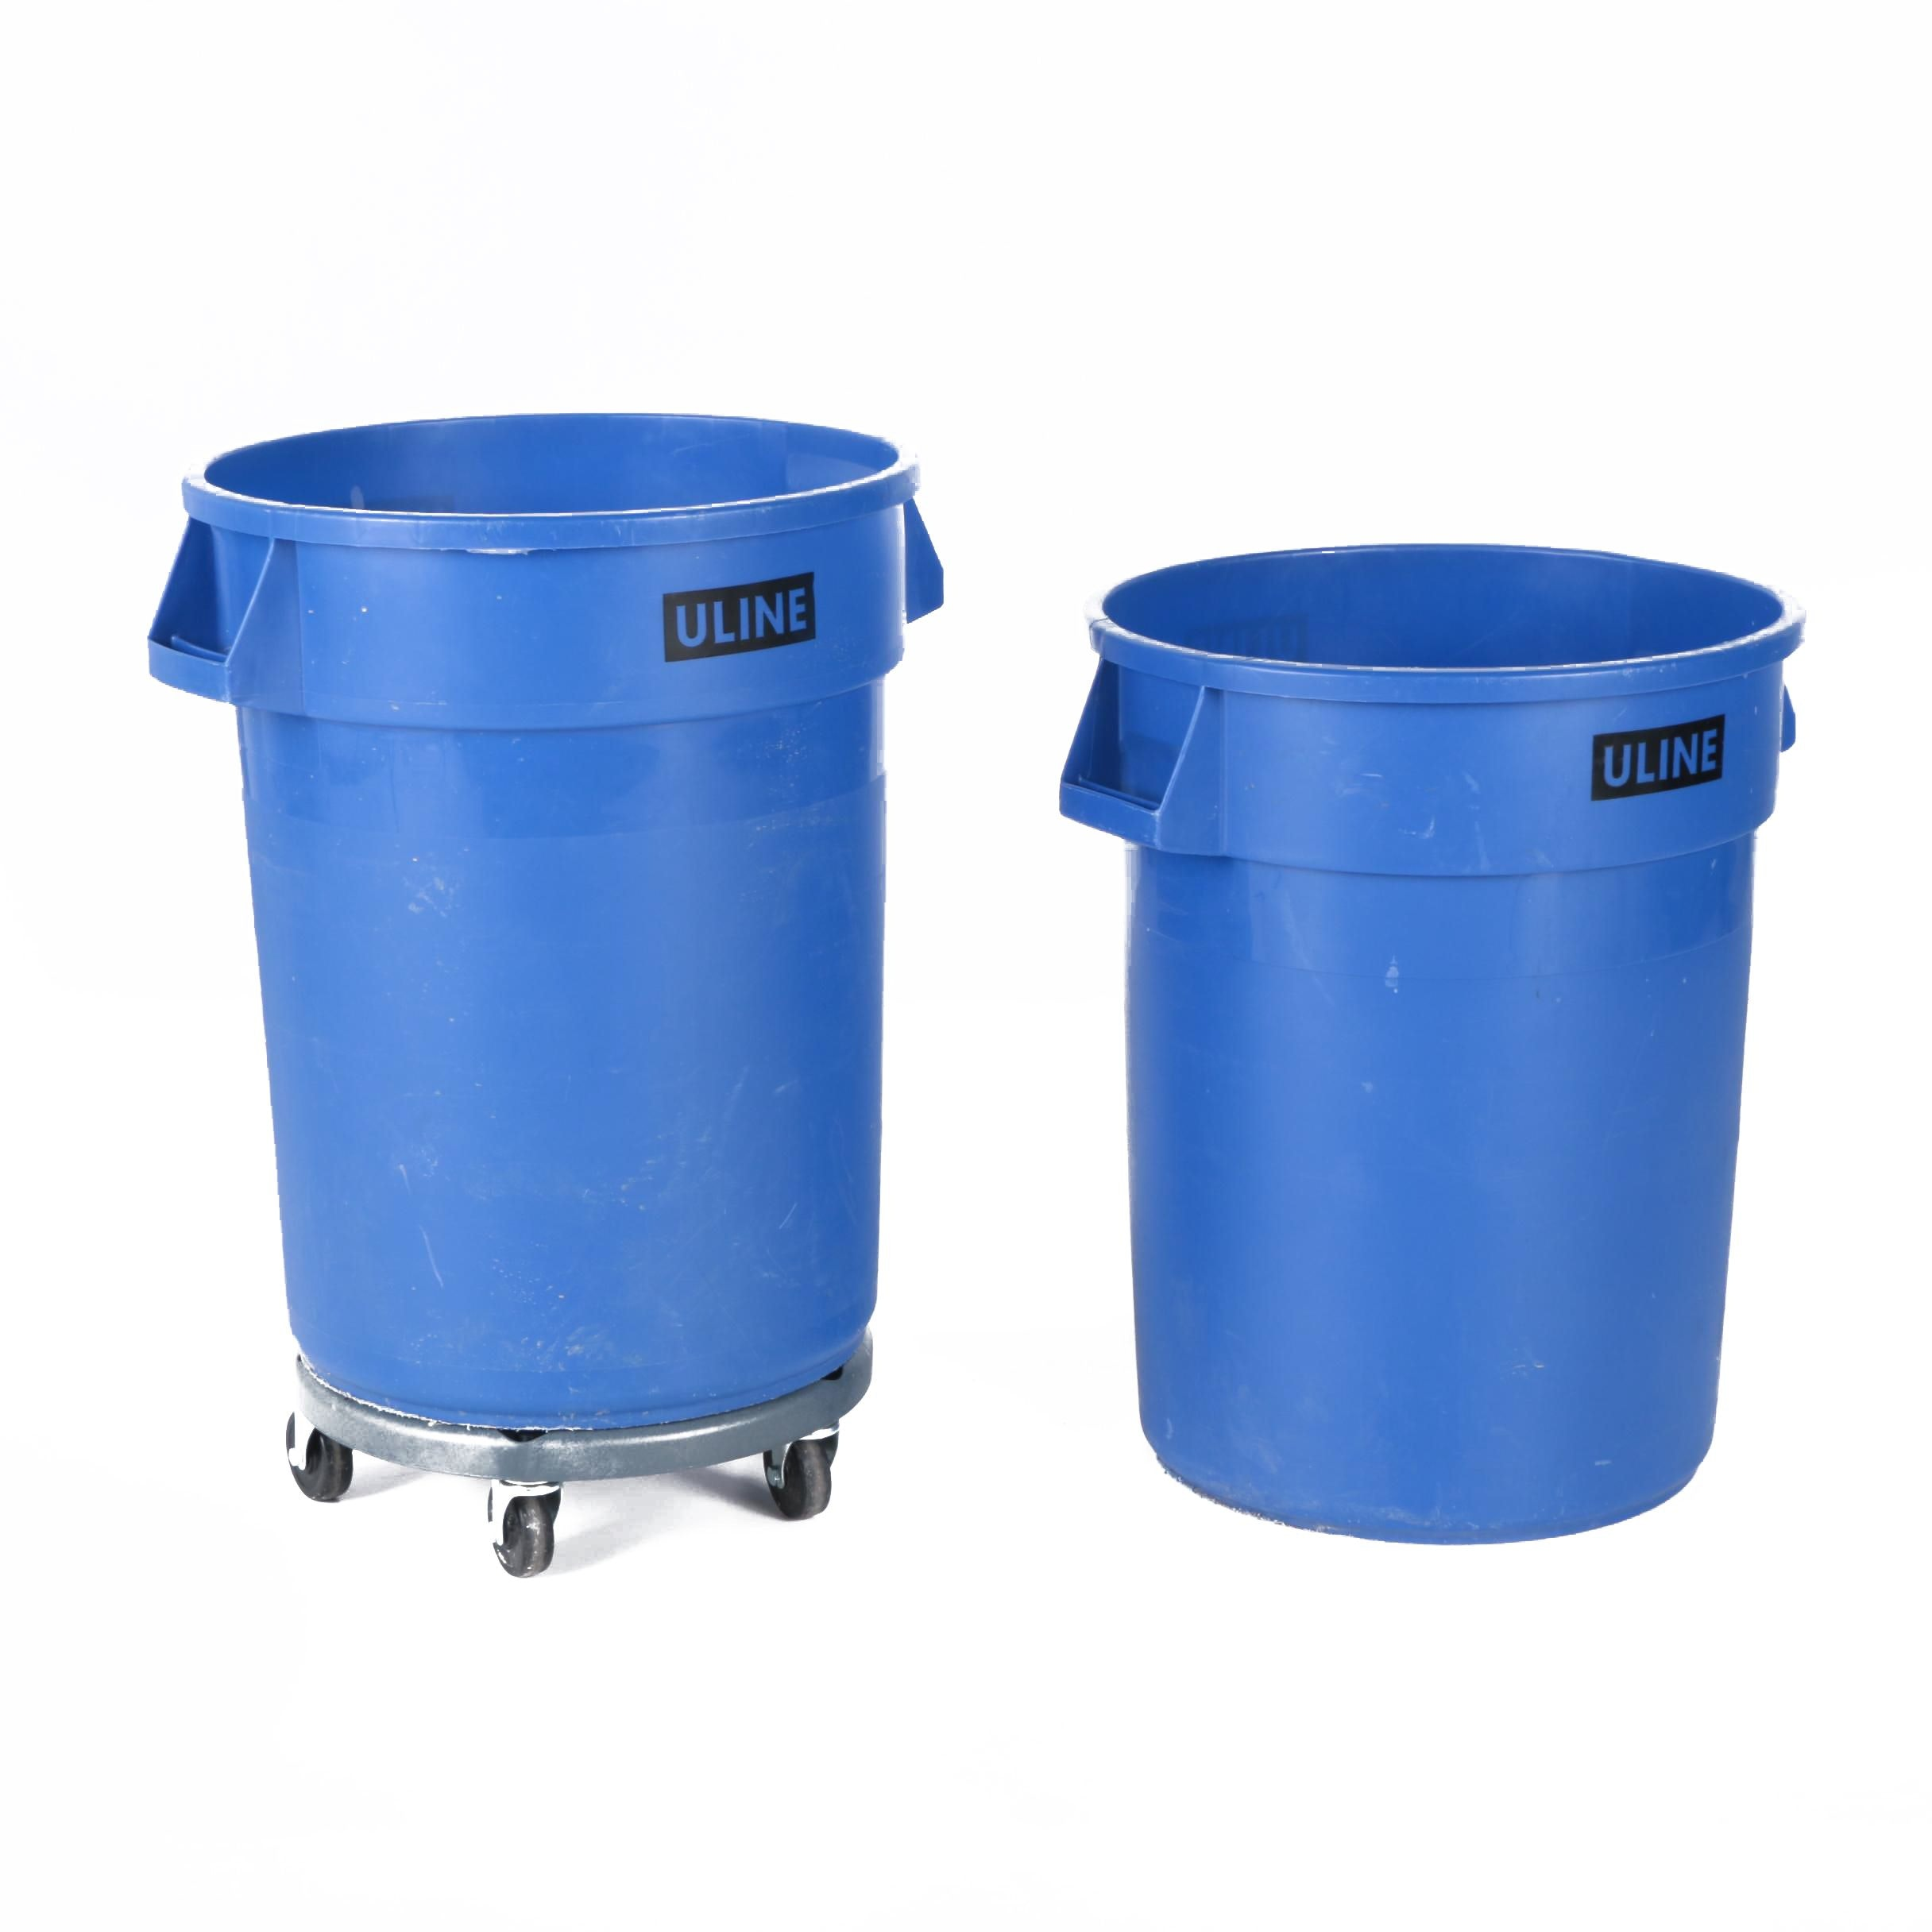 ULINE Waste Containers with Lavex Dolly